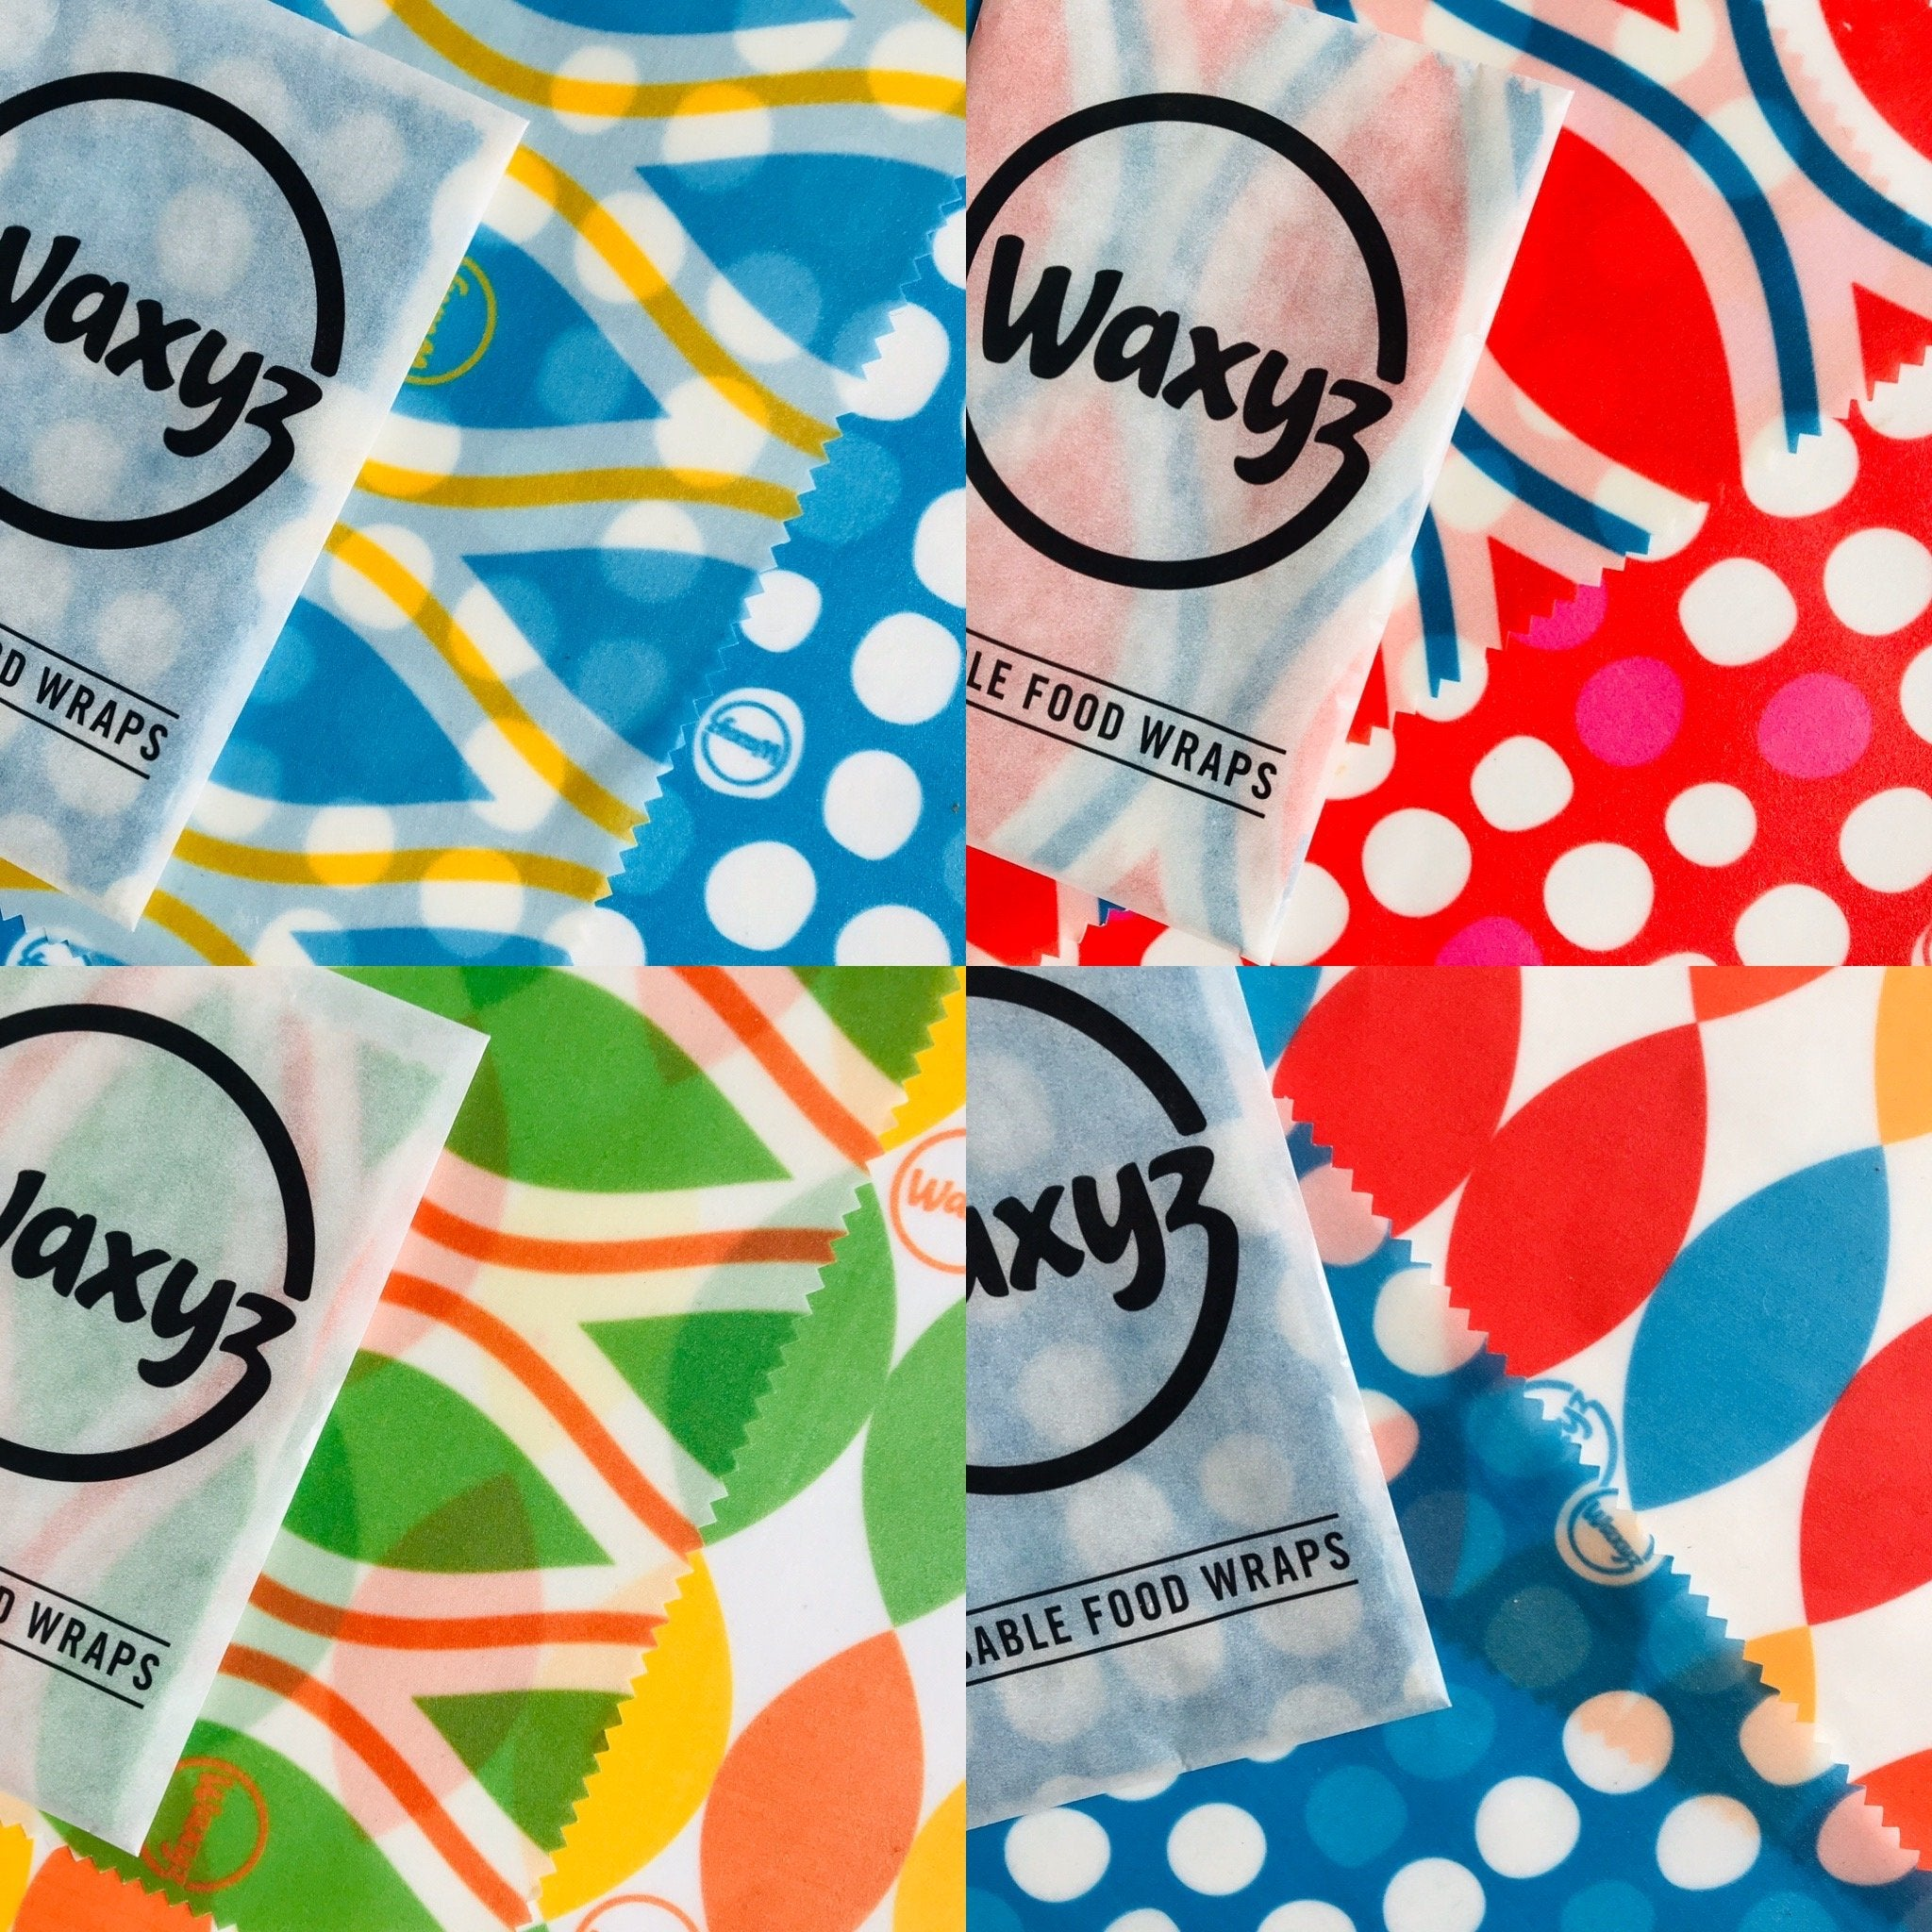 Waxyz Wrap - Twin Pack - One Small, One Medium